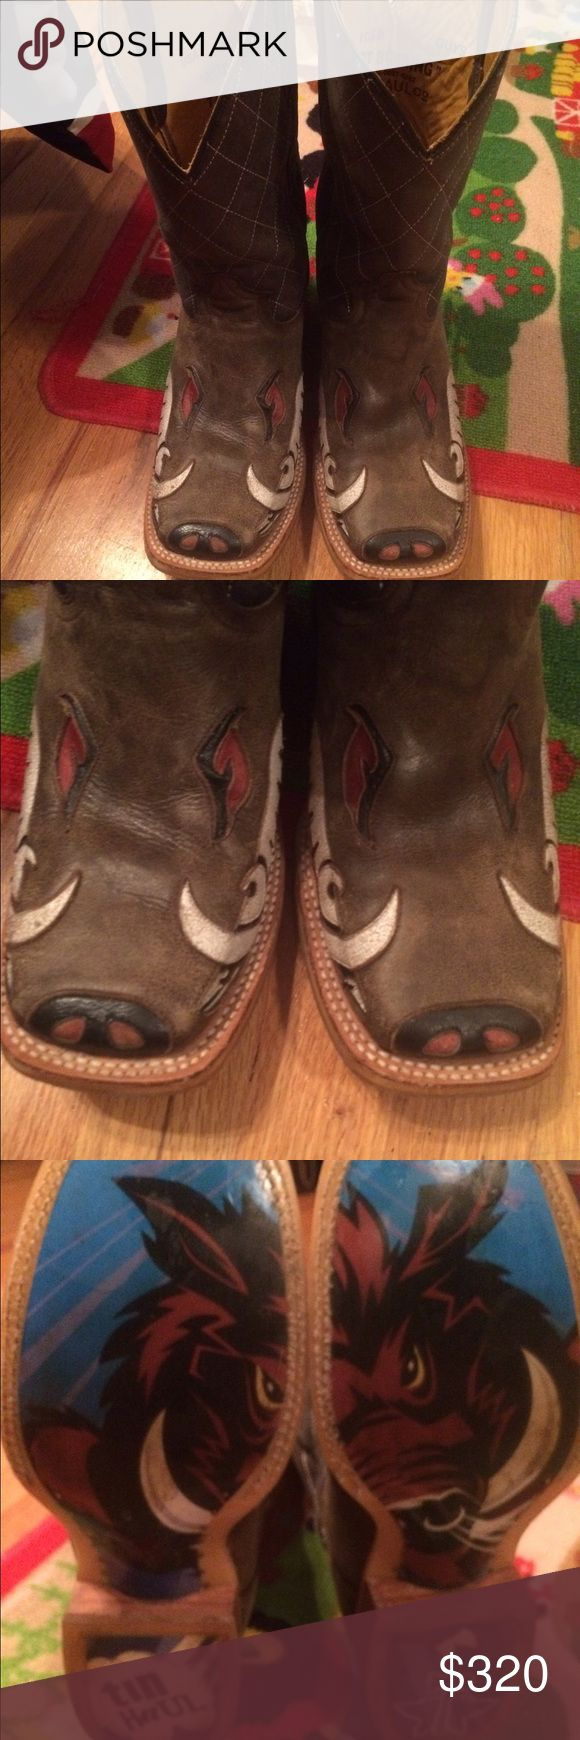 Tin haul boots like new!! Tin haul boots. Like new worn only a hand full of times. Put the boots together and the sole makes a picture of a bull. Bull face on nose of boots. Unique boots that you are guaranteed to get lots of compliments in!! Tin haul  Shoes Cowboy & Western Boots